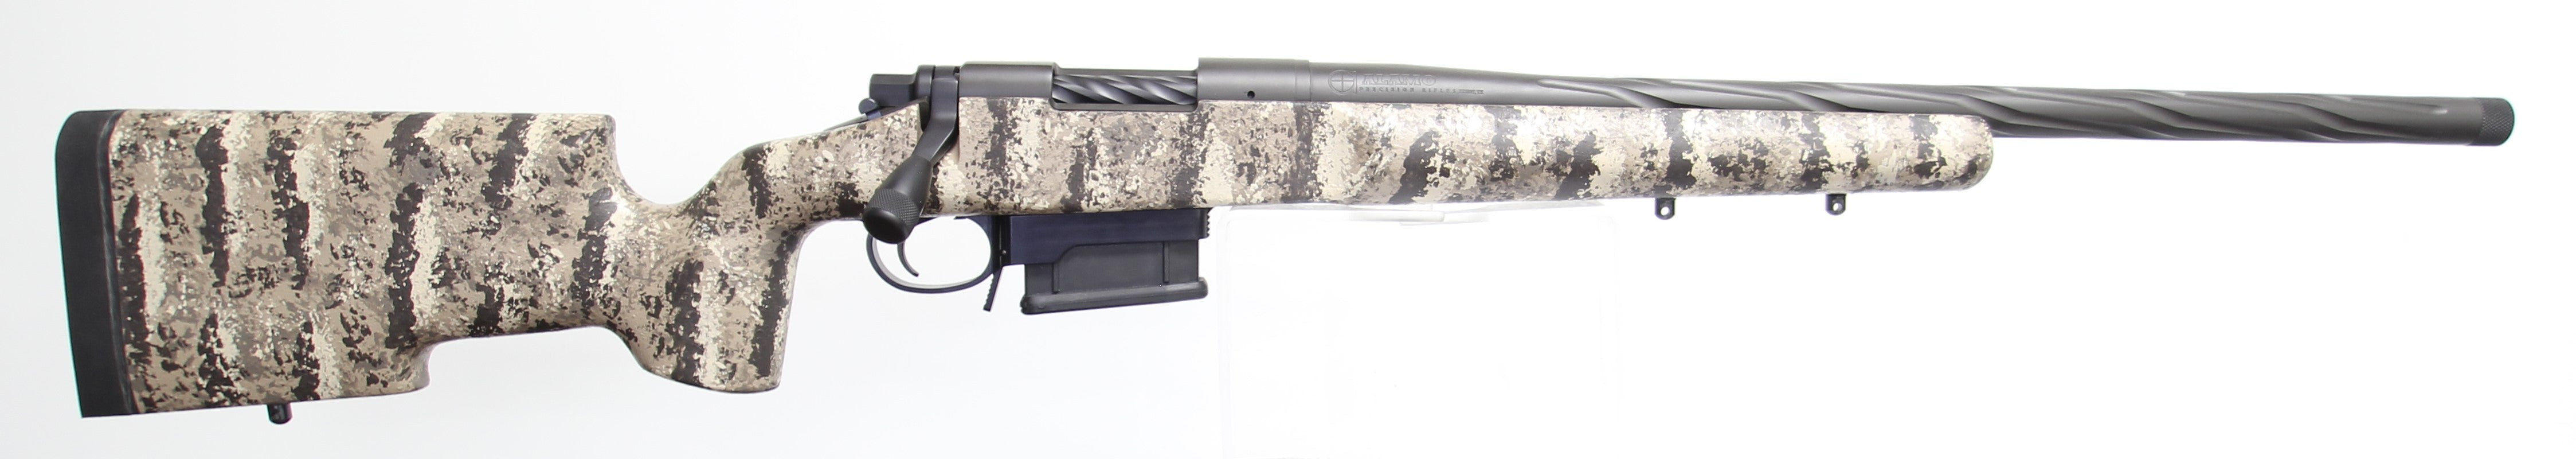 APR Ranger 223 Remington